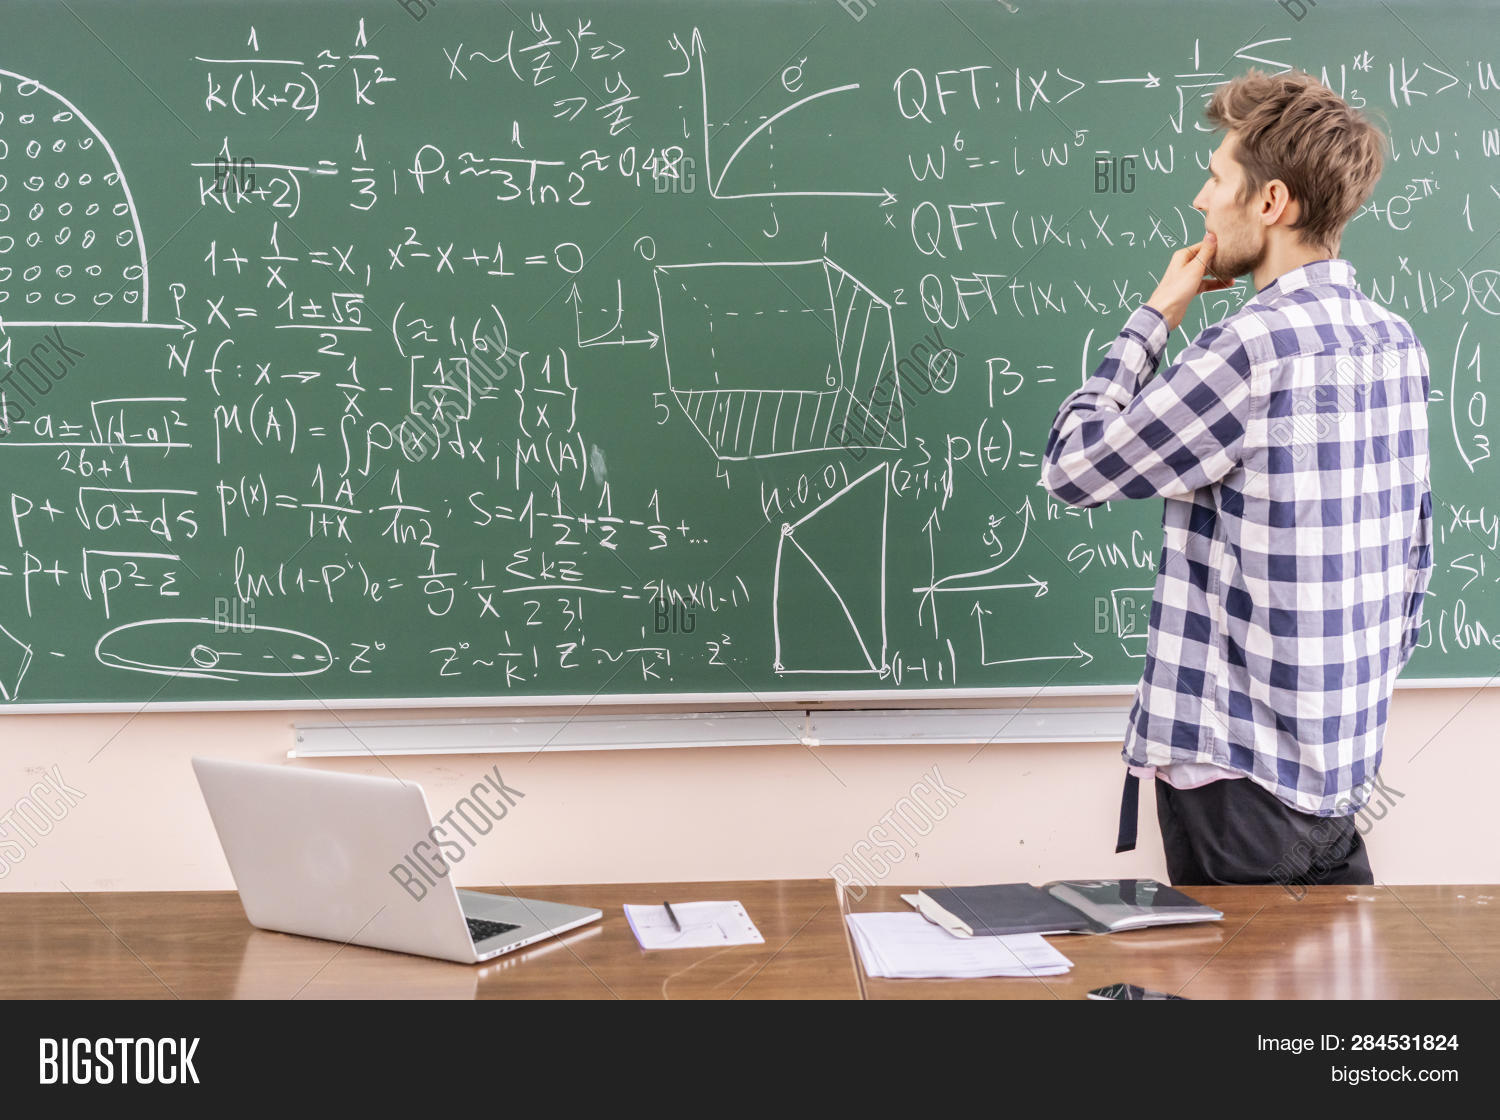 academic,analysis,blackboard,board,boardroom,calculate,chalk,chat,class,classroom,coaching,colleagues,conference,data,education,faculty,formula,handsome,knowledge,lesson,man,person,presentation,professional,professor,research,school,scientist,statistics,student,study,success,suit,teacher,university,young